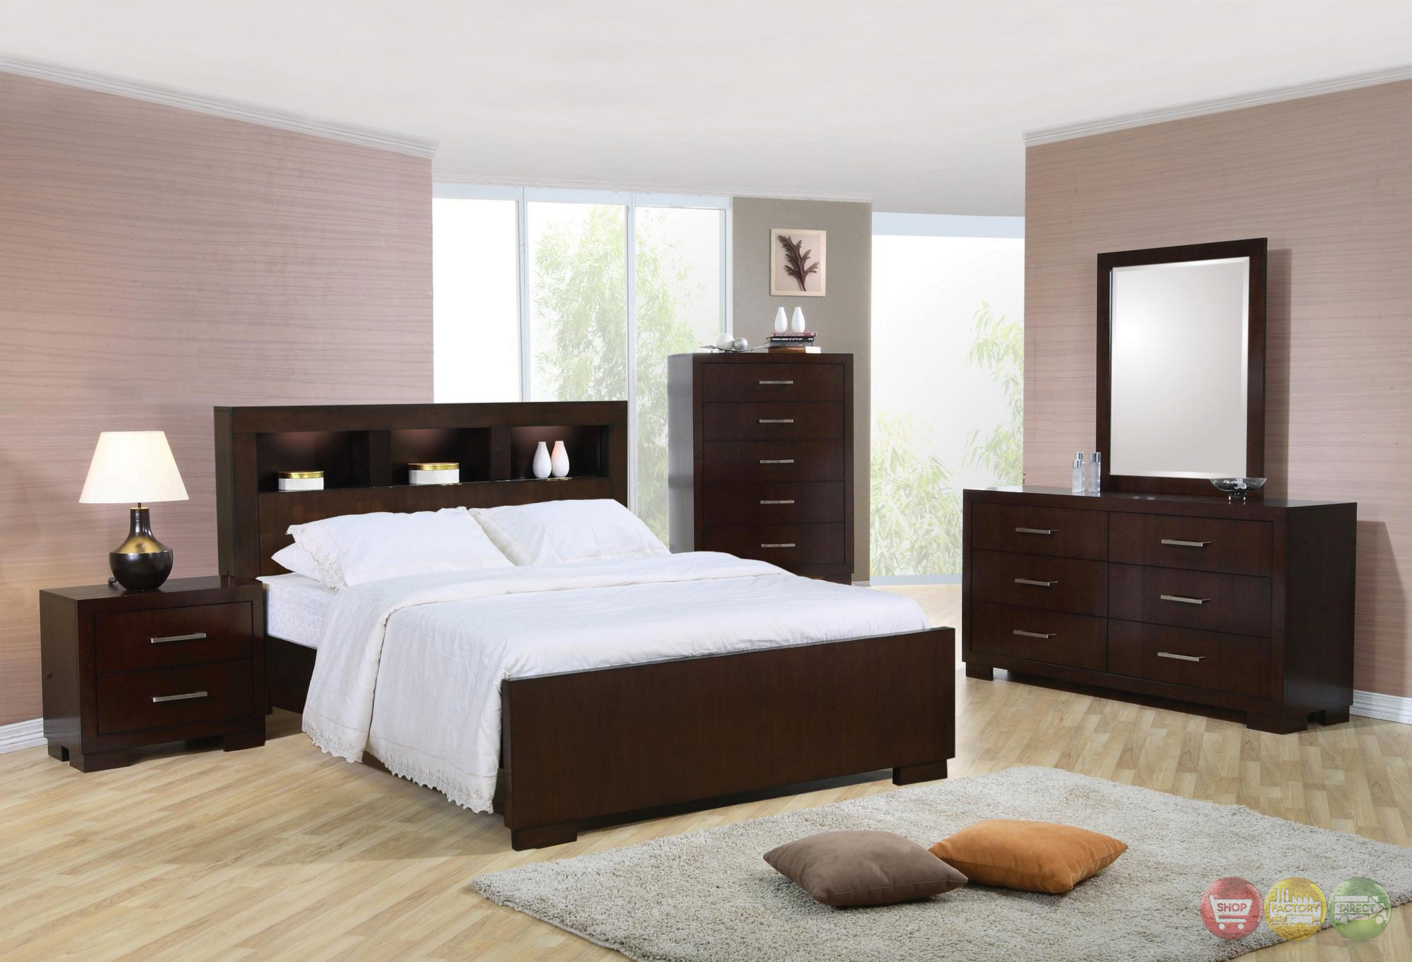 queen contemporary bed storage headboard w lights cappuccino finish. Black Bedroom Furniture Sets. Home Design Ideas